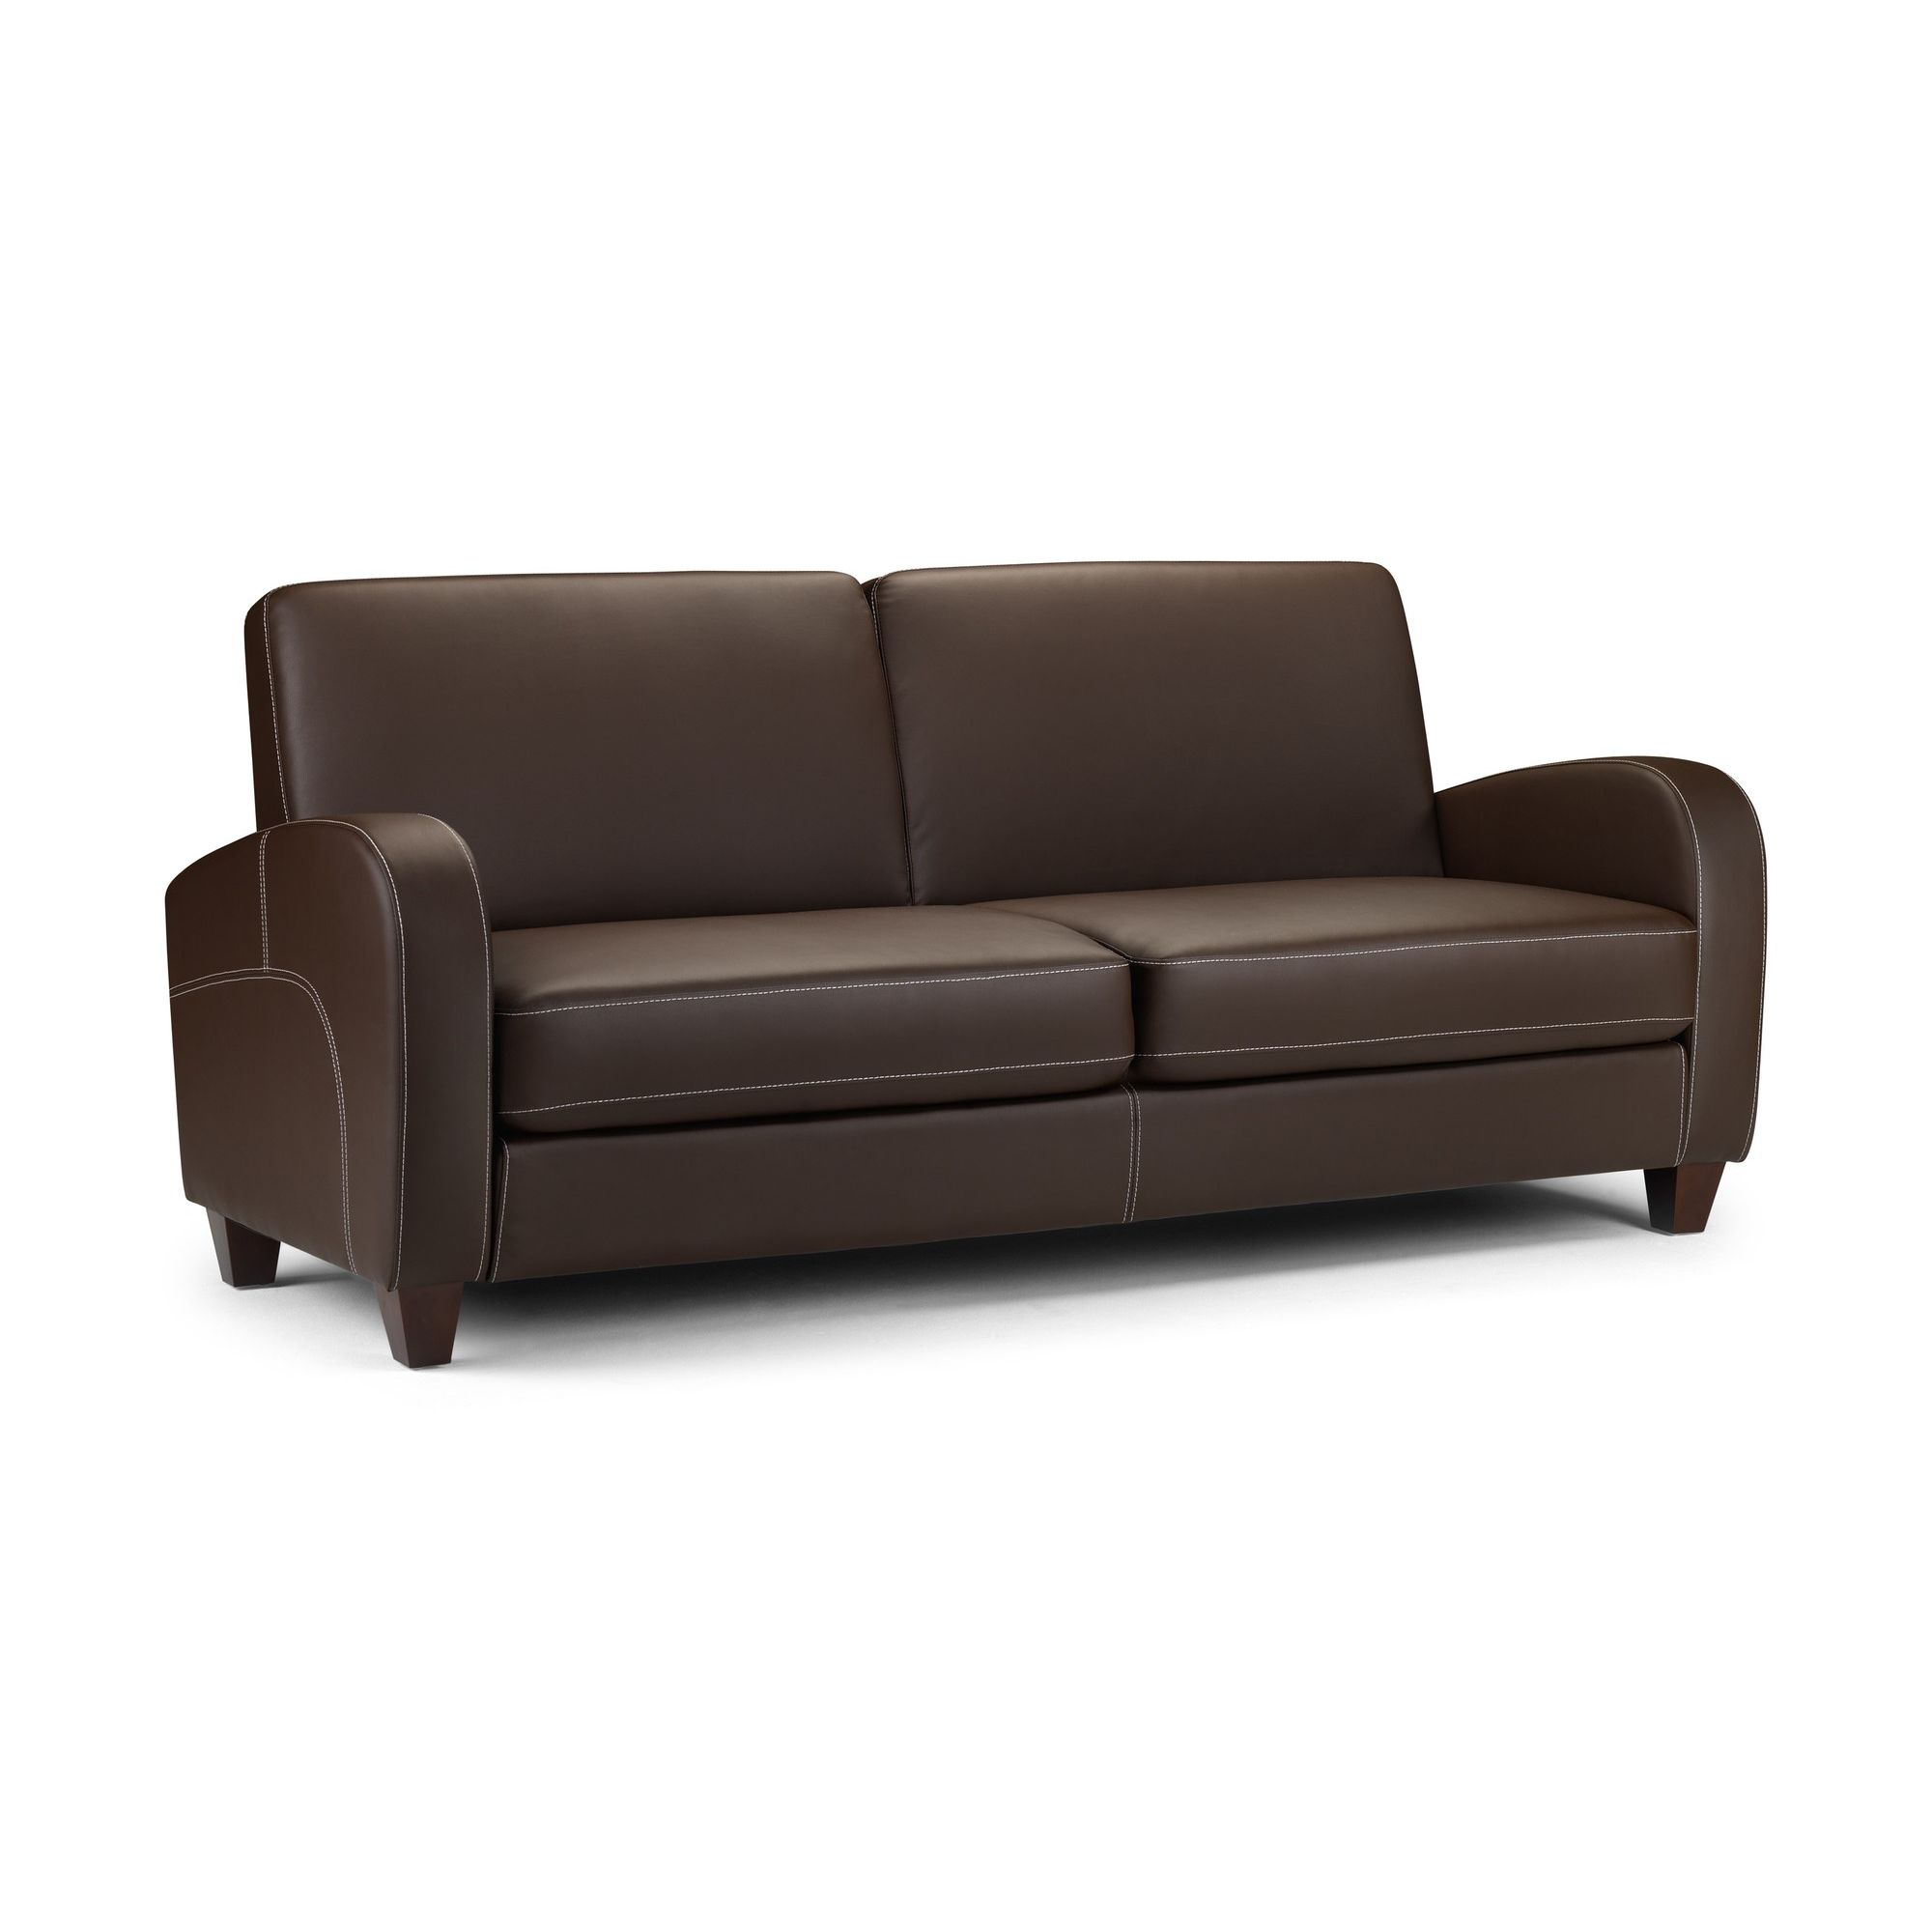 Julian Bowen Vivo Three Seater Sofa in Chestnut at Tesco Direct